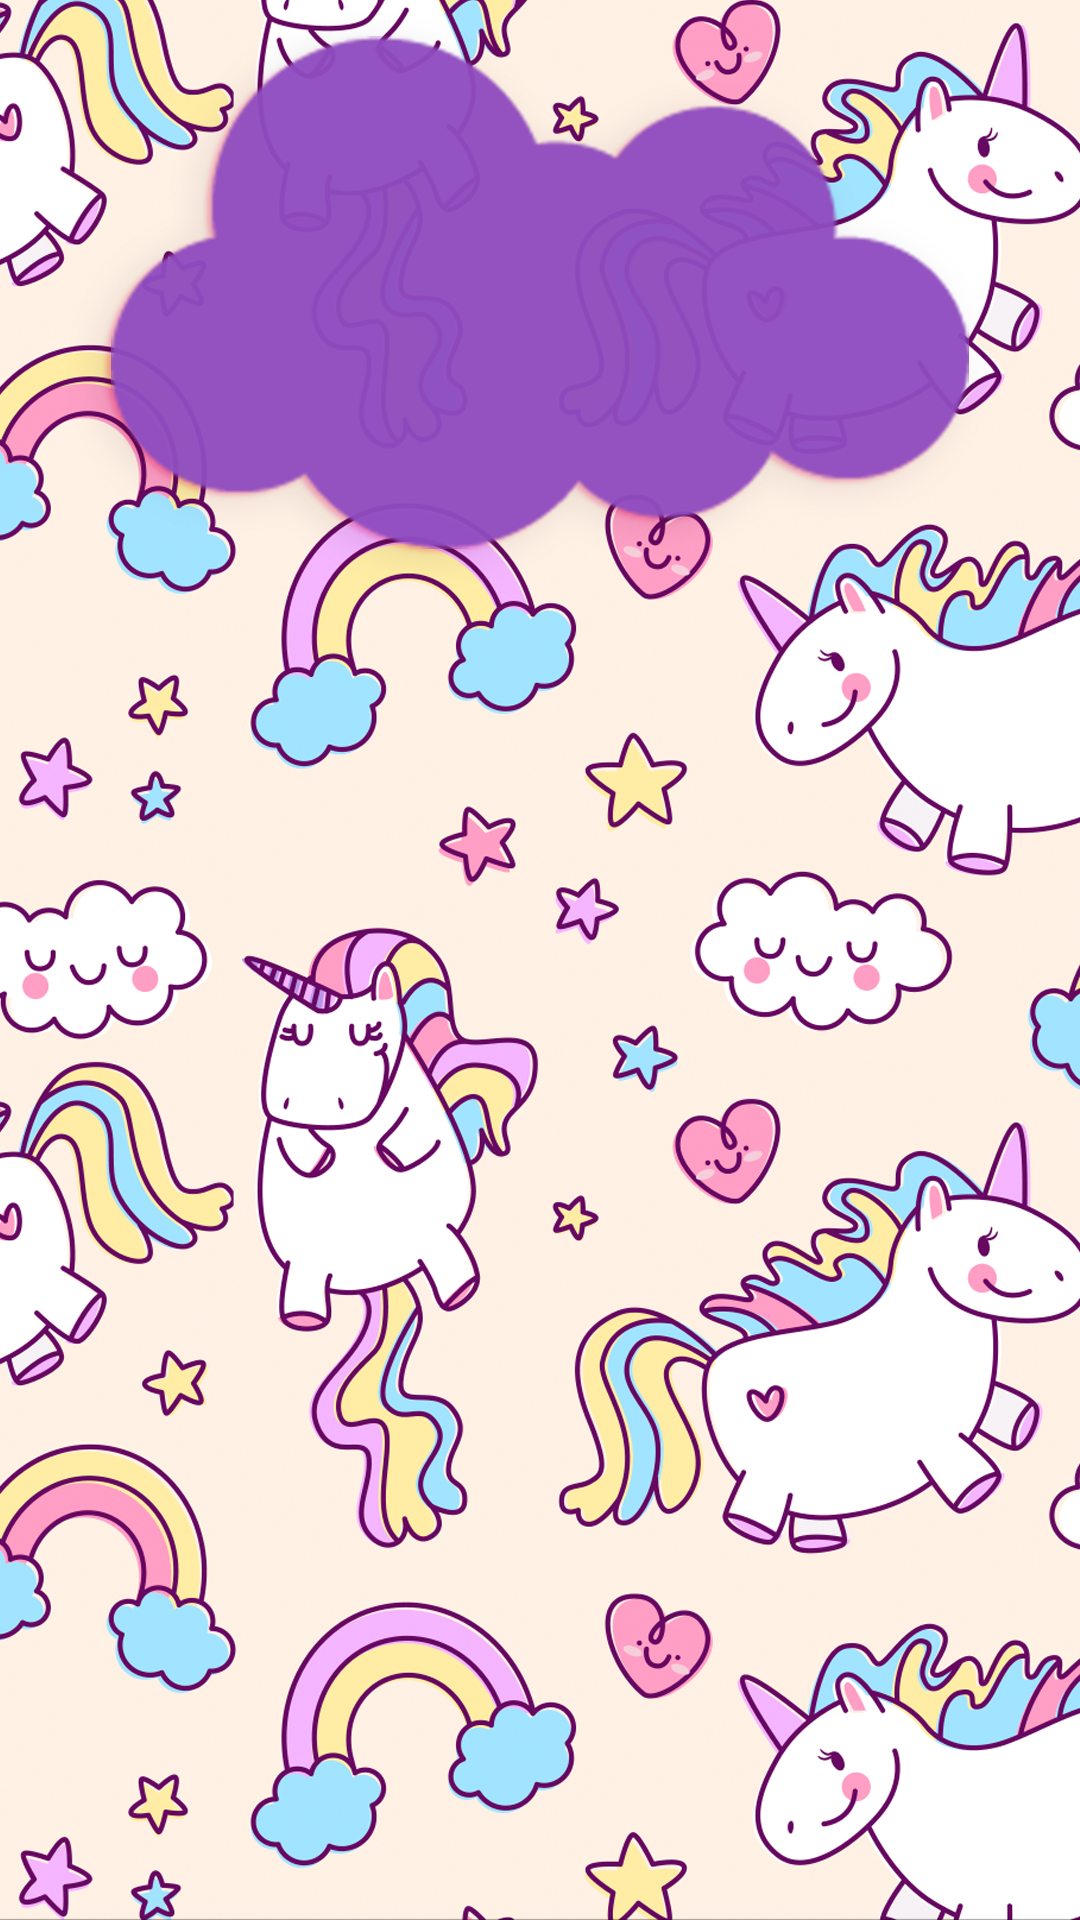 Download Our Hd Pink Unicorns Wallpaper For Android Phones 0481